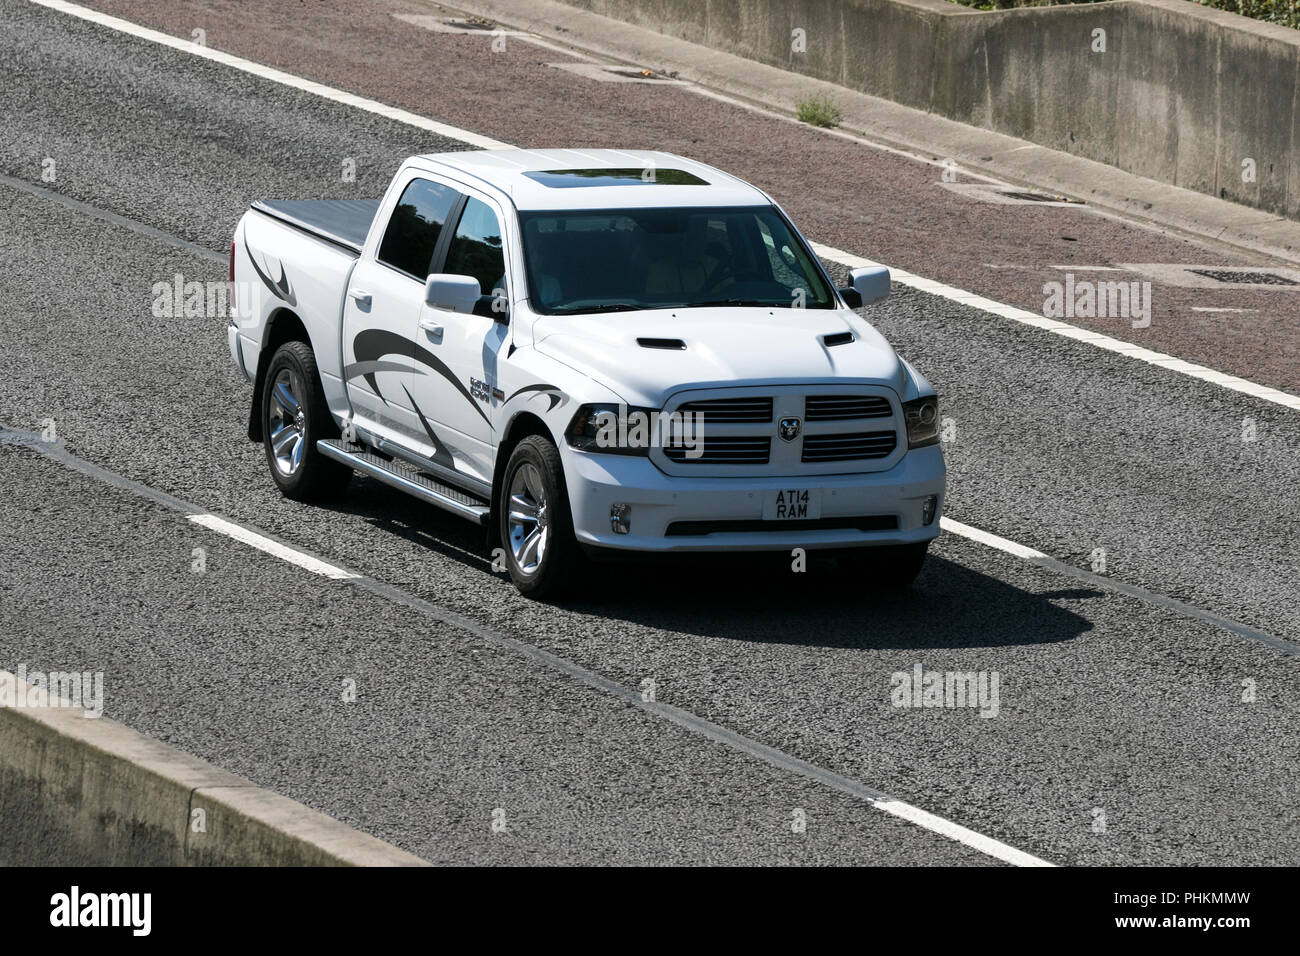 2015 Dodge Usa Suv Classic American Vehicles On The M6 At Lancaster Uk Stock Photo Alamy